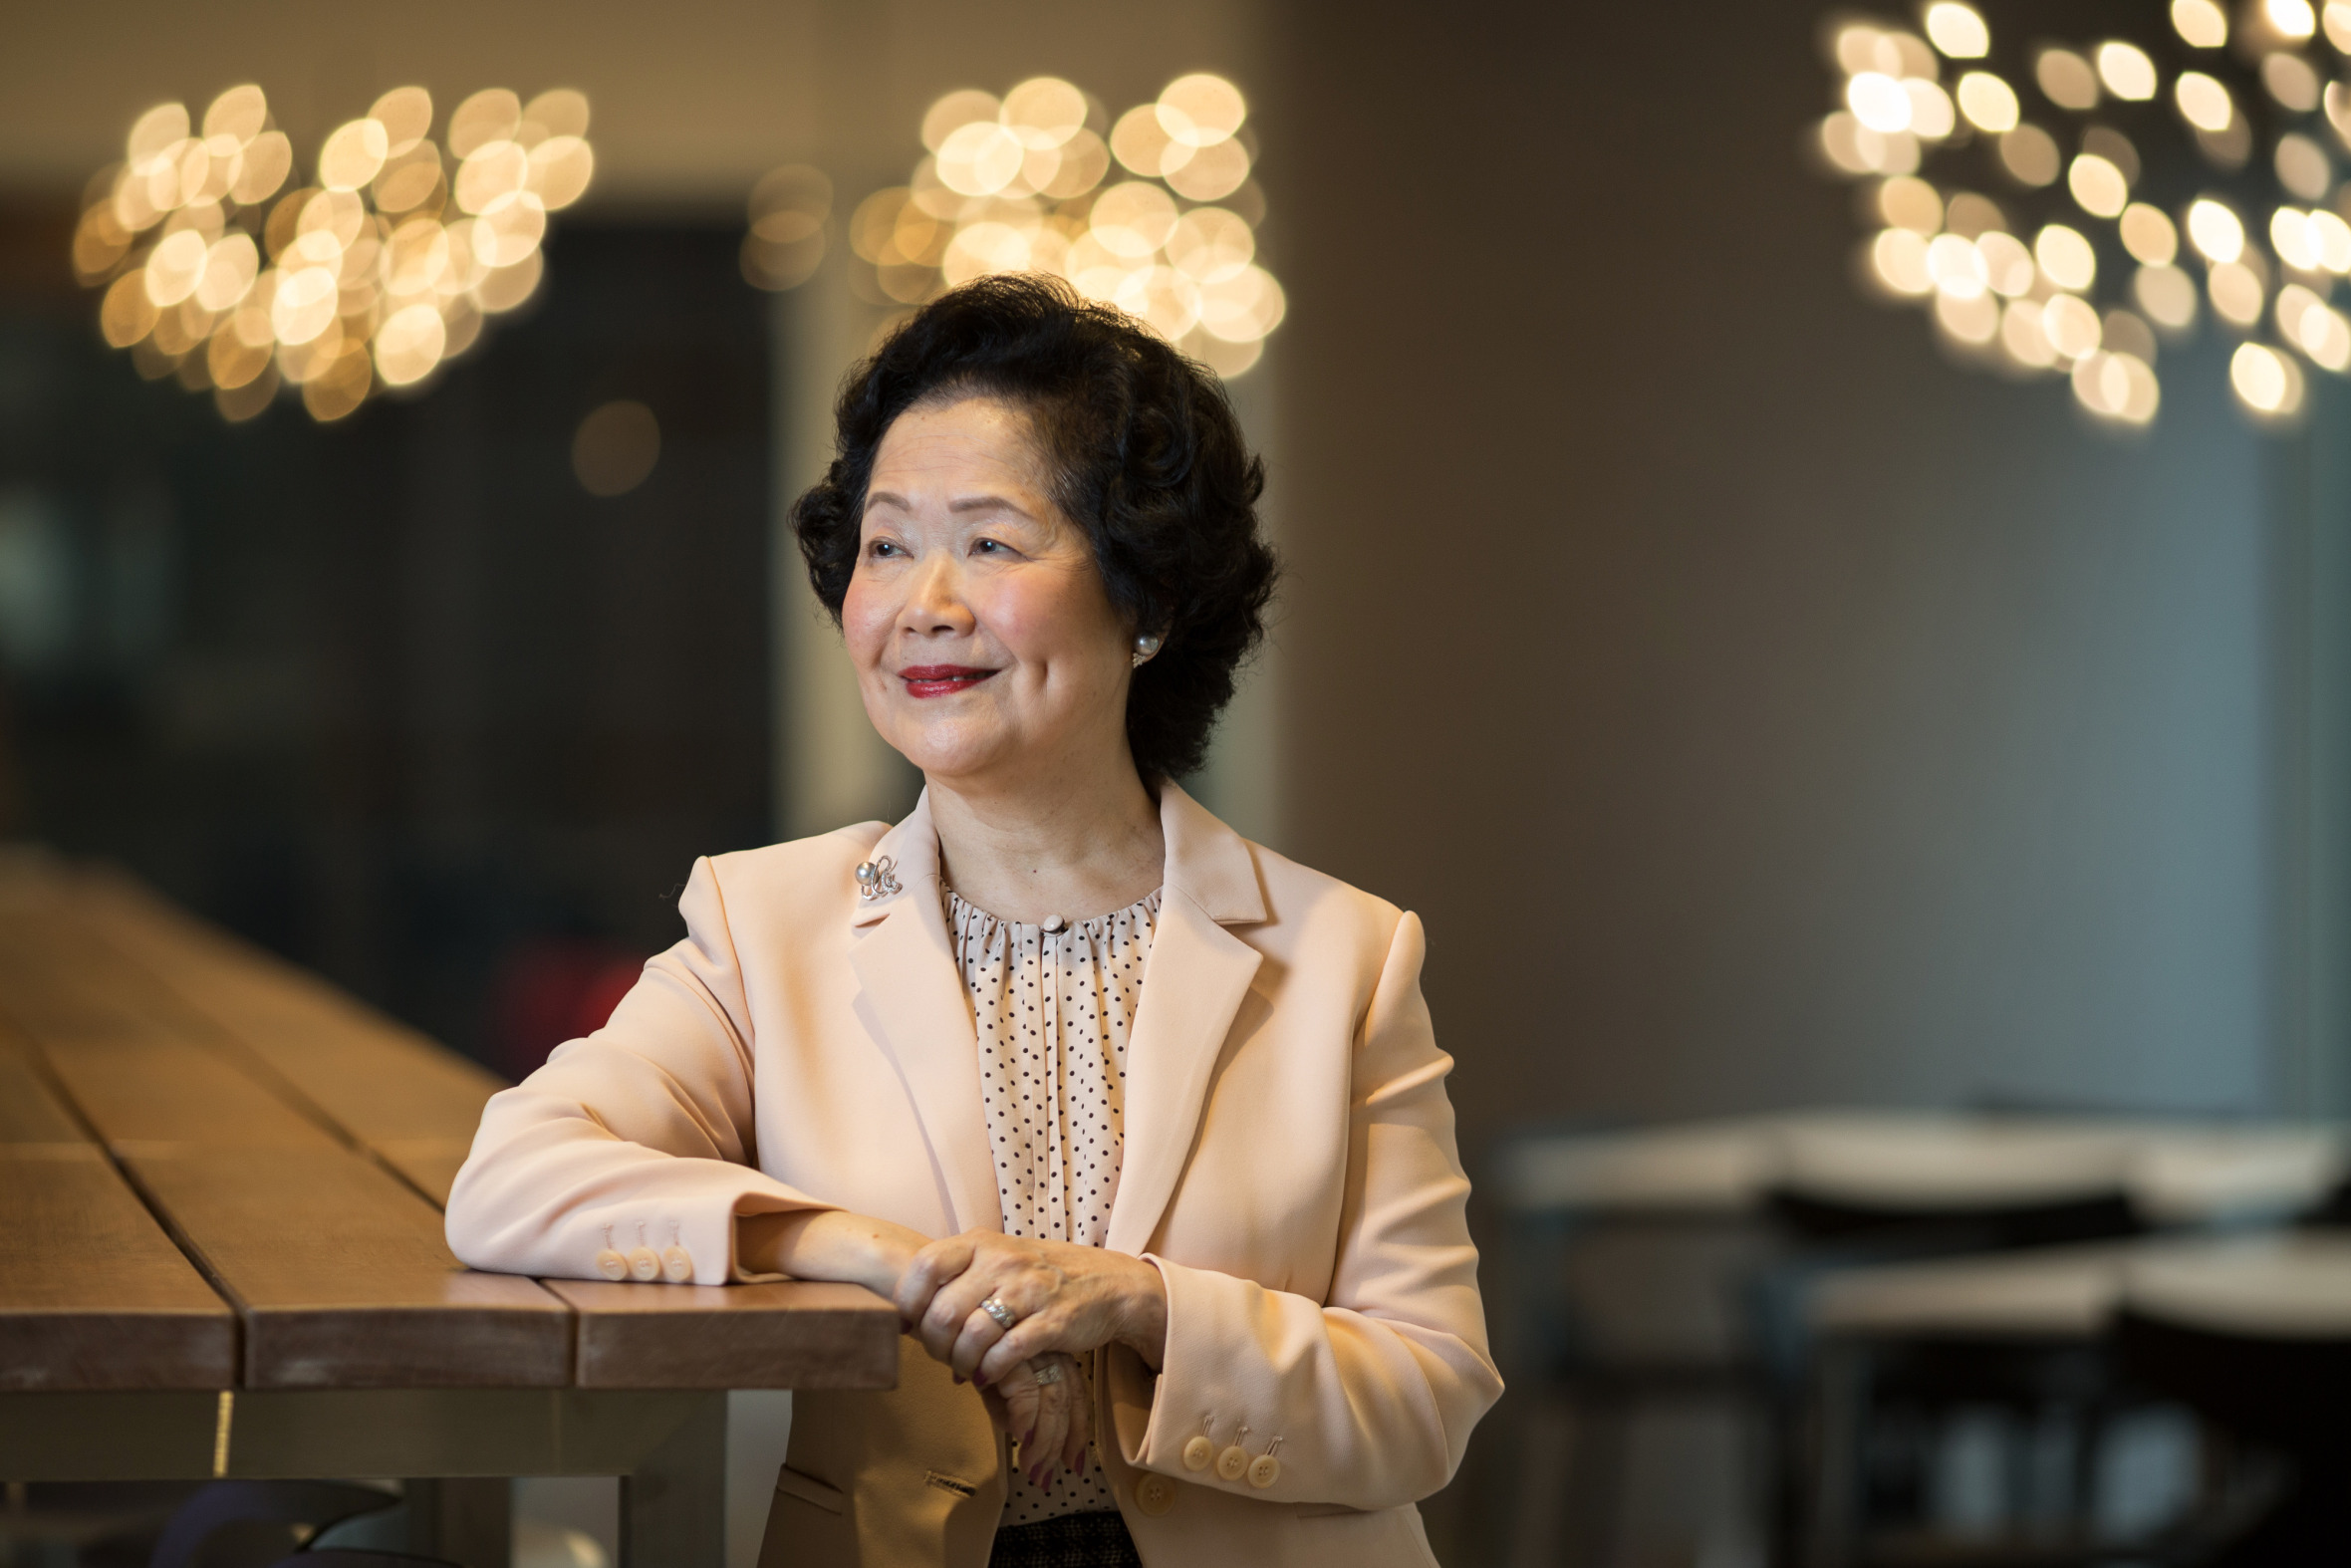 Anson Chan, Hong Kong's former chief secretary, poses for a photograph following a television interview in Hong Kong on June 19, 2015